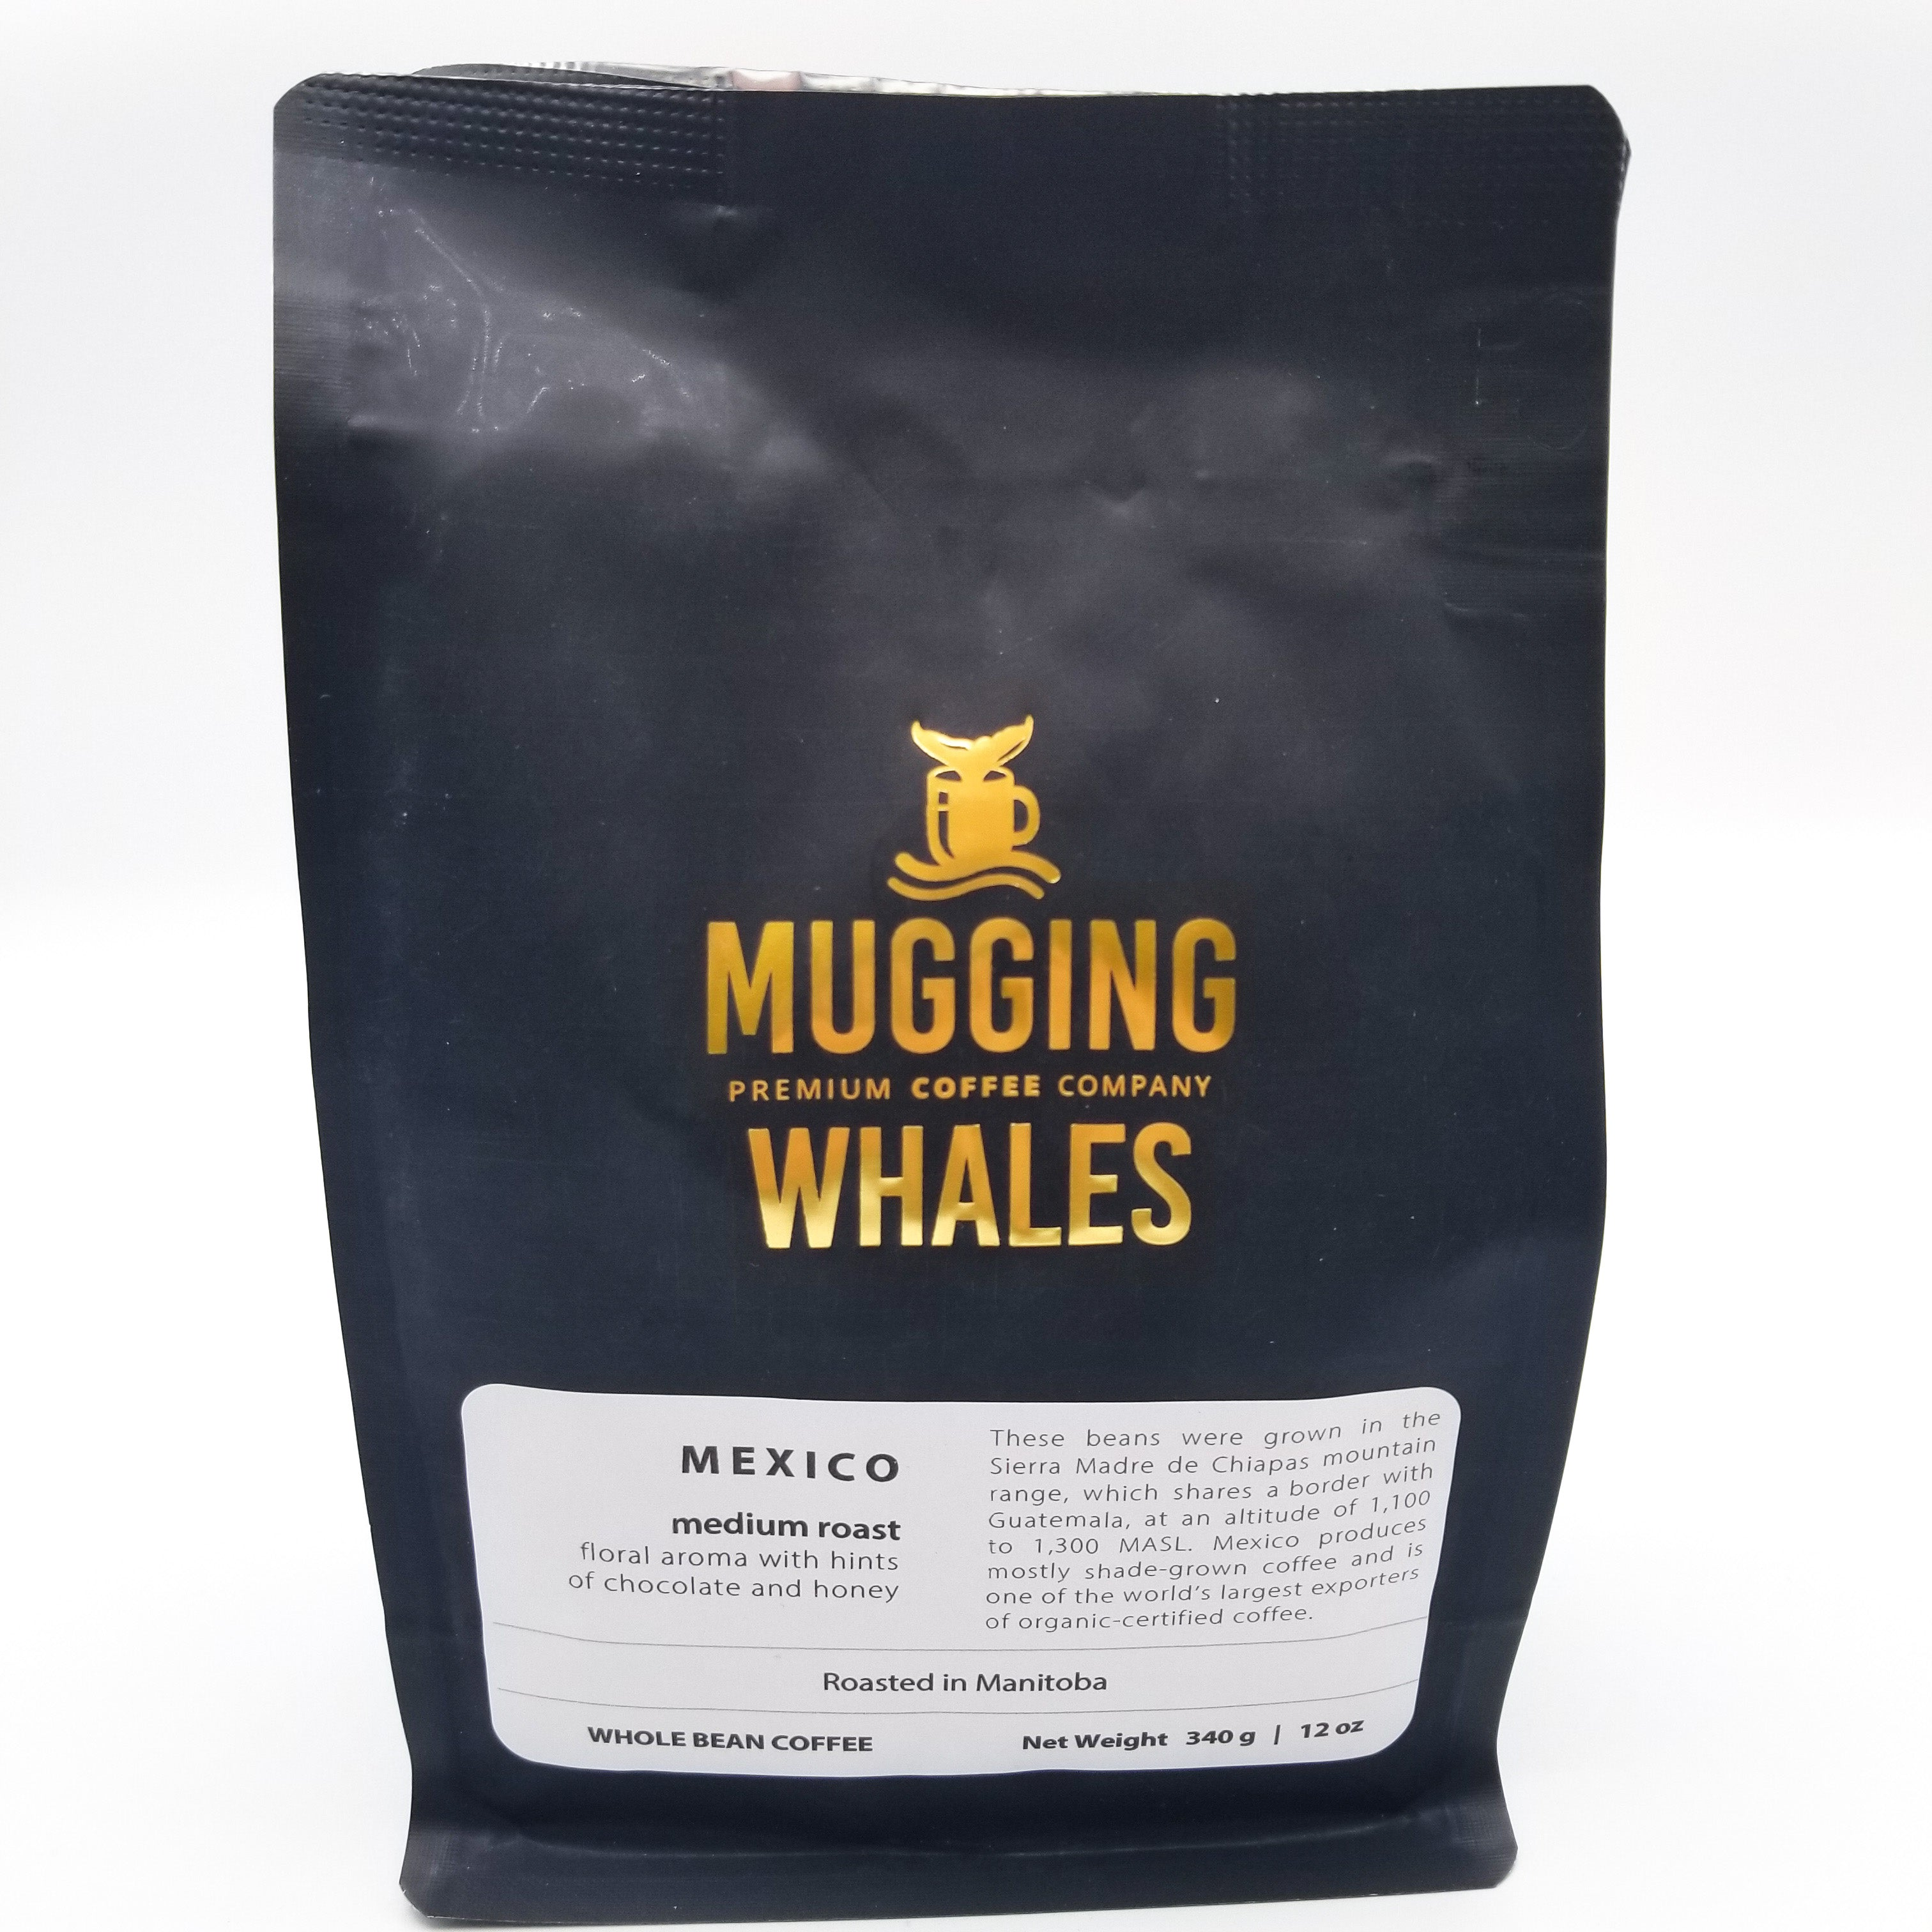 Mexico Medium Roast Coffee 340g by Mugging Whales